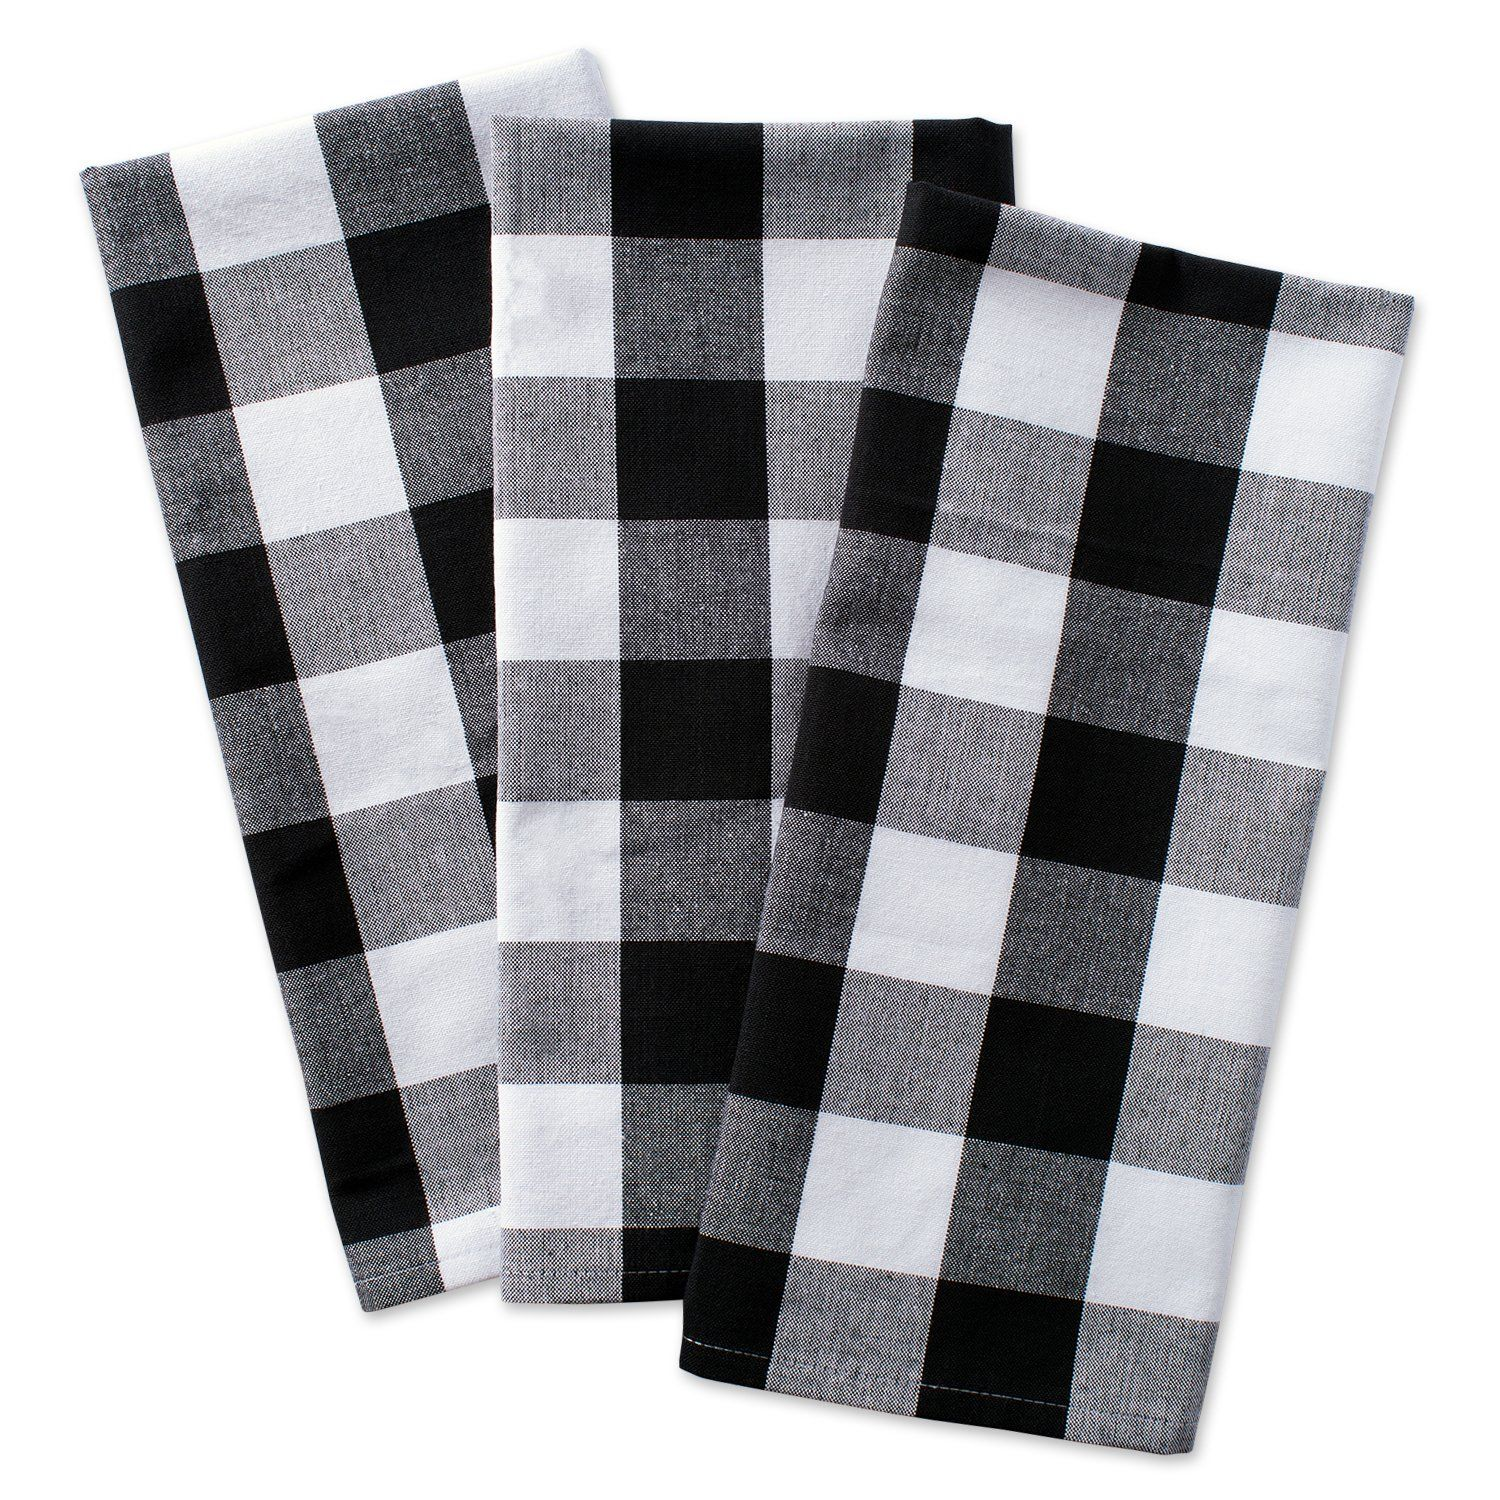 Dii Cotton Buffalo Check Plaid Dish Towels 20x30 Set Of 3 Monogrammable Oversized Kitchen Towels For Drying Clea With Images Dish Towels Buffalo Check Plaid Design Imports